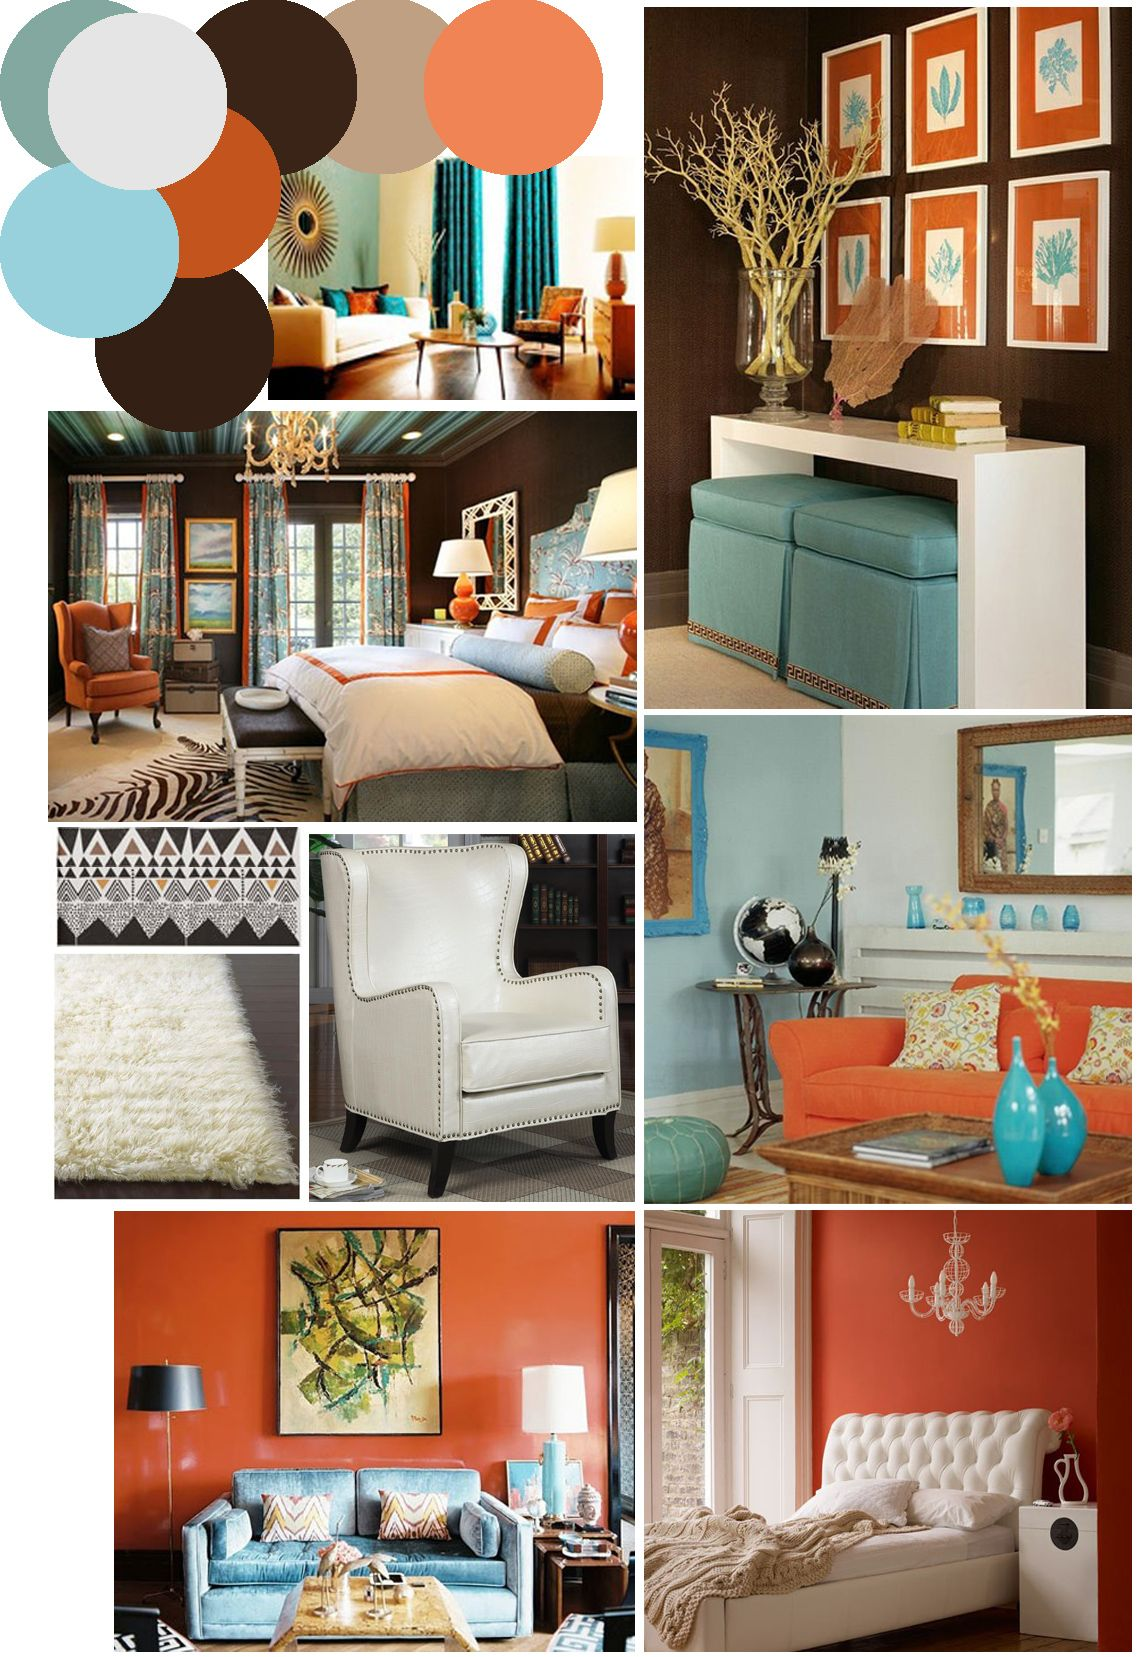 Colors To Go With Burnt Orange Curtains Mr Kate Color Palette Inspo Chocolate Brown Coral And Ro Living Room Orange Brown Living Room Living Room Colors